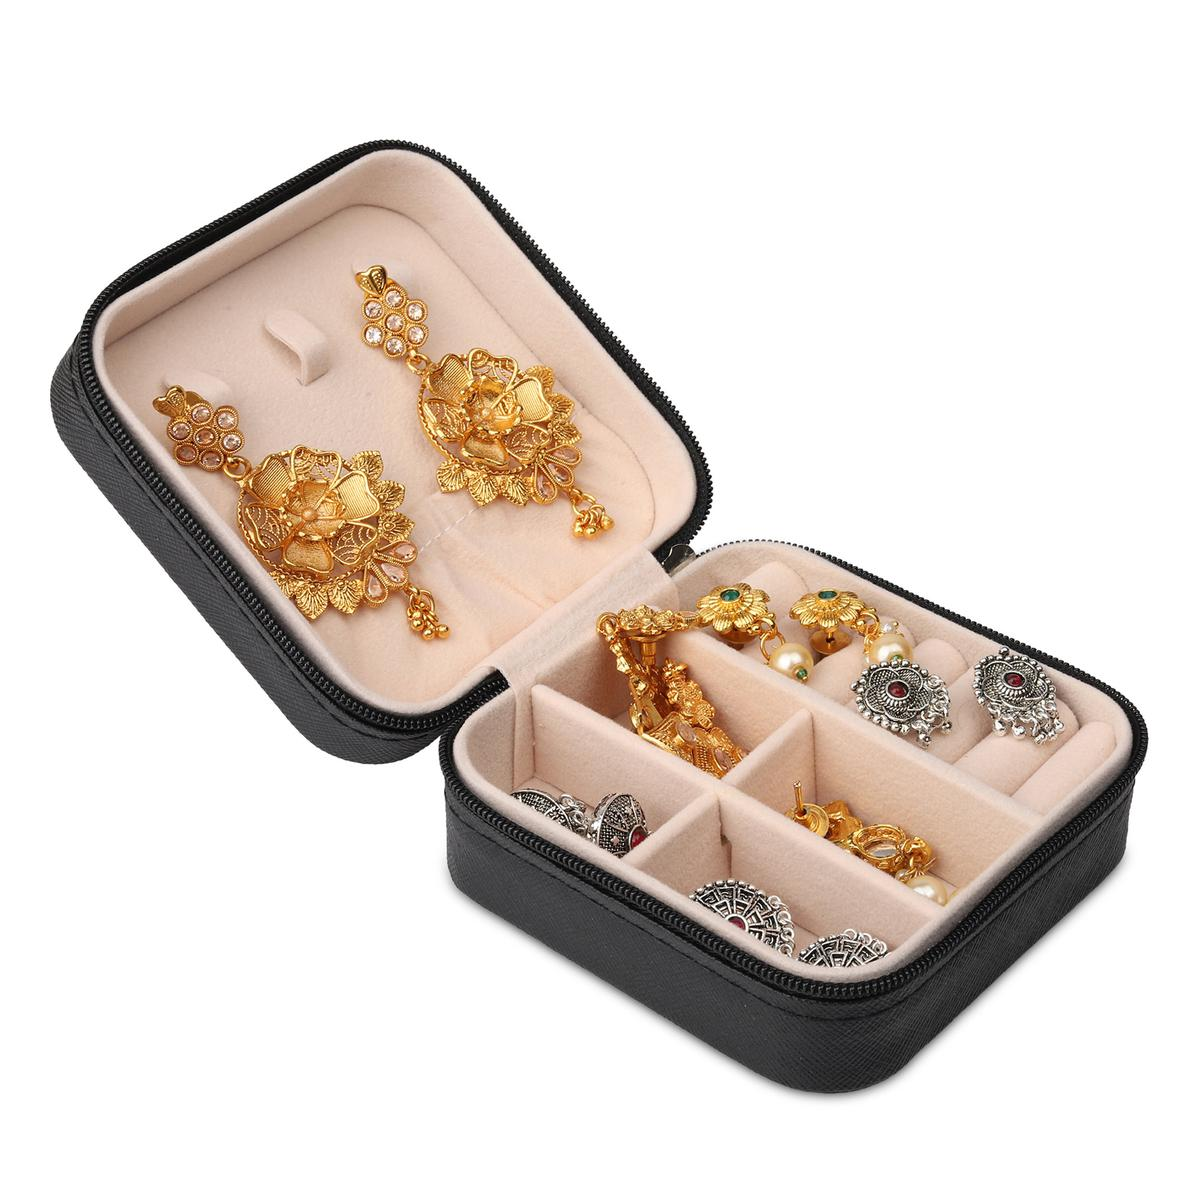 NFI essentials - PU Leather Travel Jewellery Storage Box Organizer Display Storage Case Woman Jewellery Box for Earrings, Rings, Necklaces, Bracelets (Black)